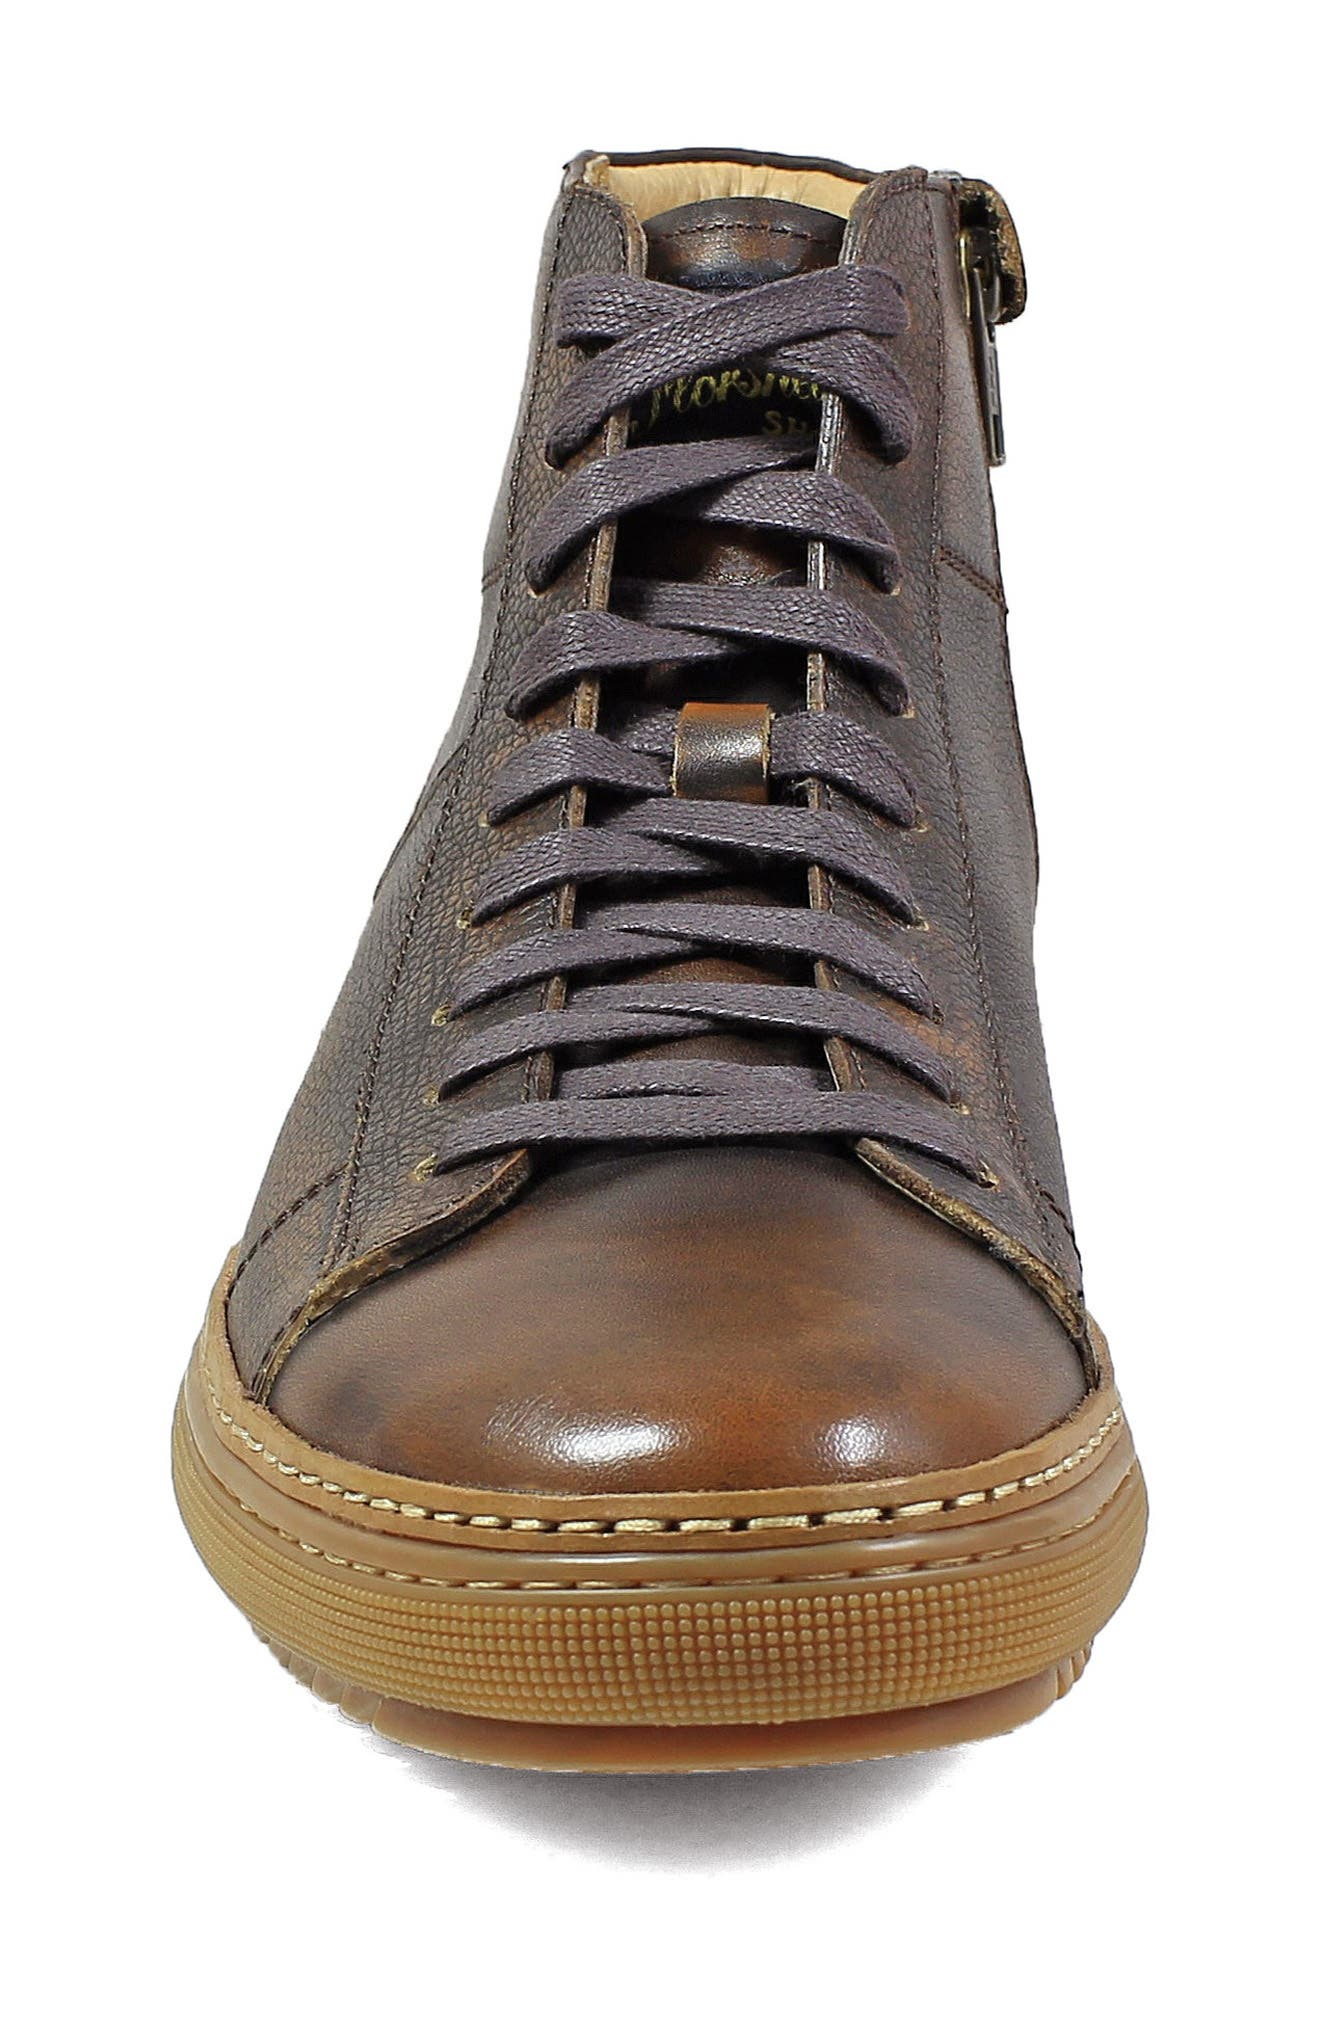 Crew Sneaker,                             Alternate thumbnail 4, color,                             Cognac